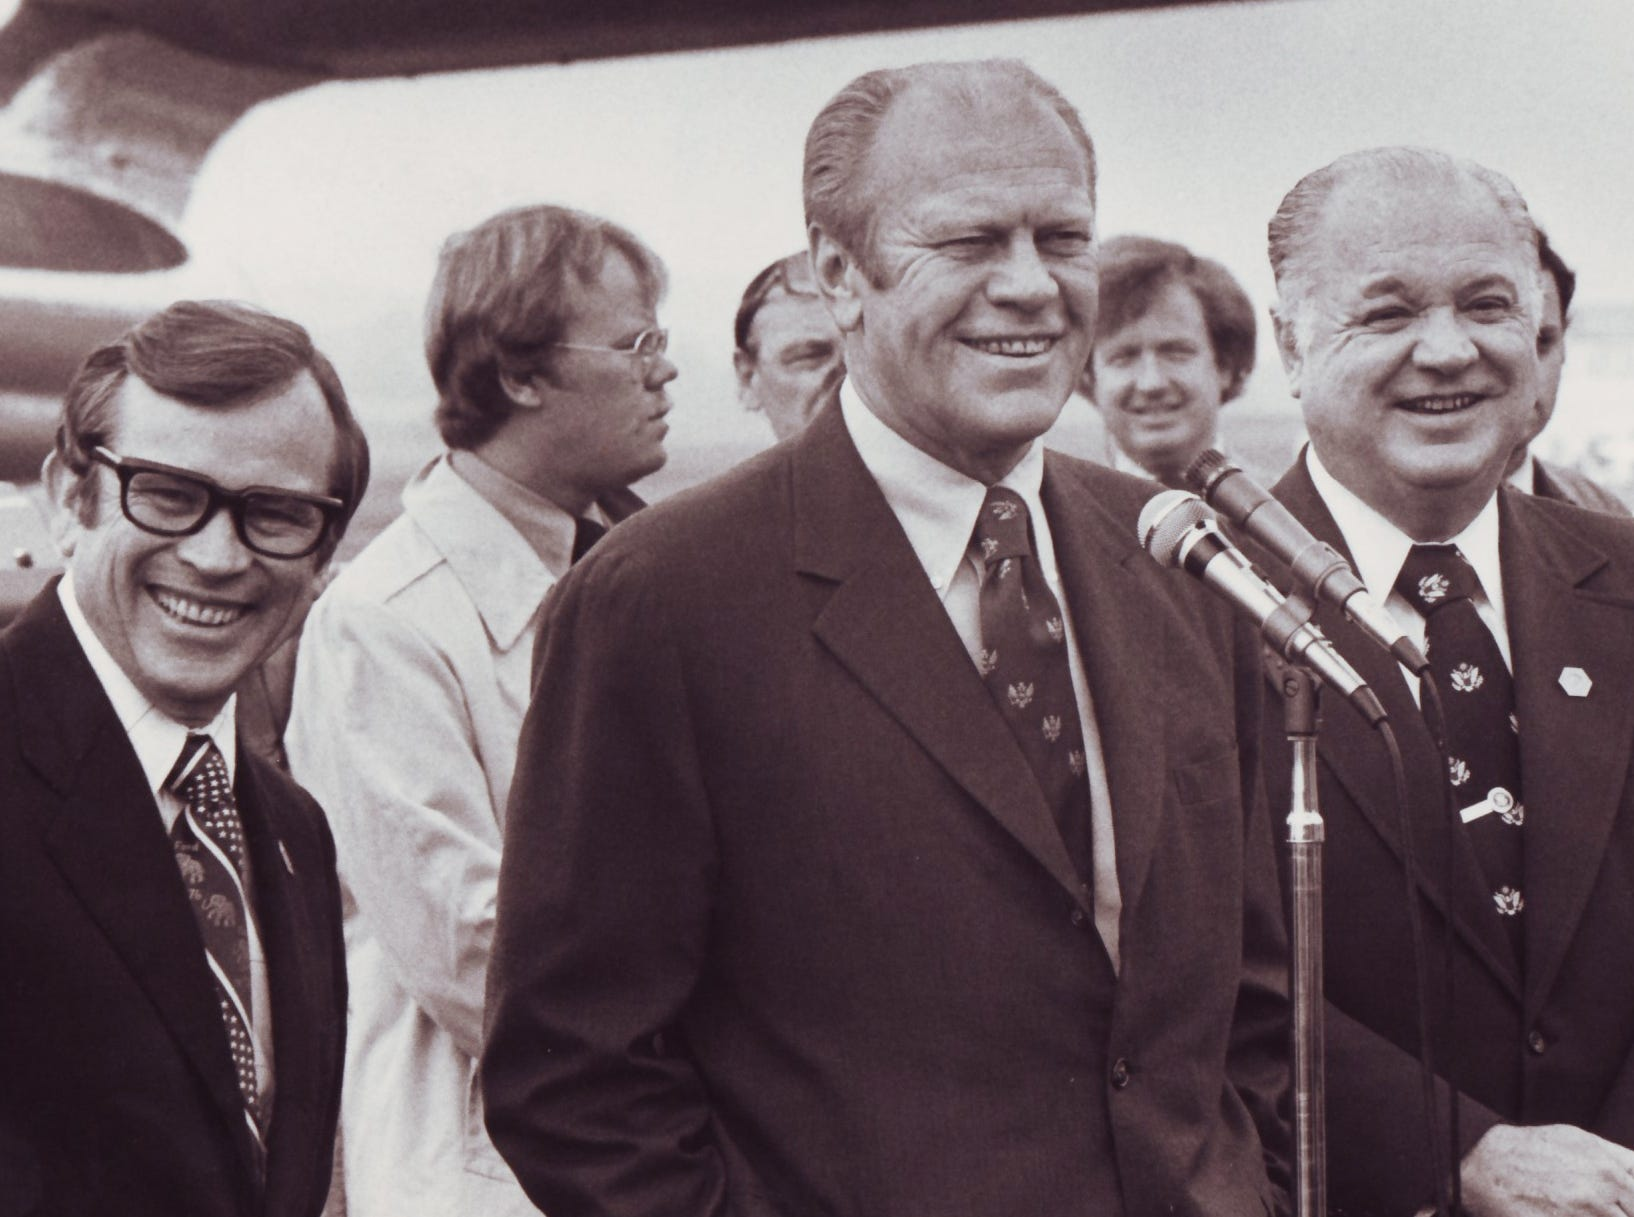 President Gerald Ford at the Tri-Cities Airport while visiting Johnson City. Ford, center, with U.S. Sen. Howard Baker, left, and U.S. Rep. James Quillen. May 14, 1976